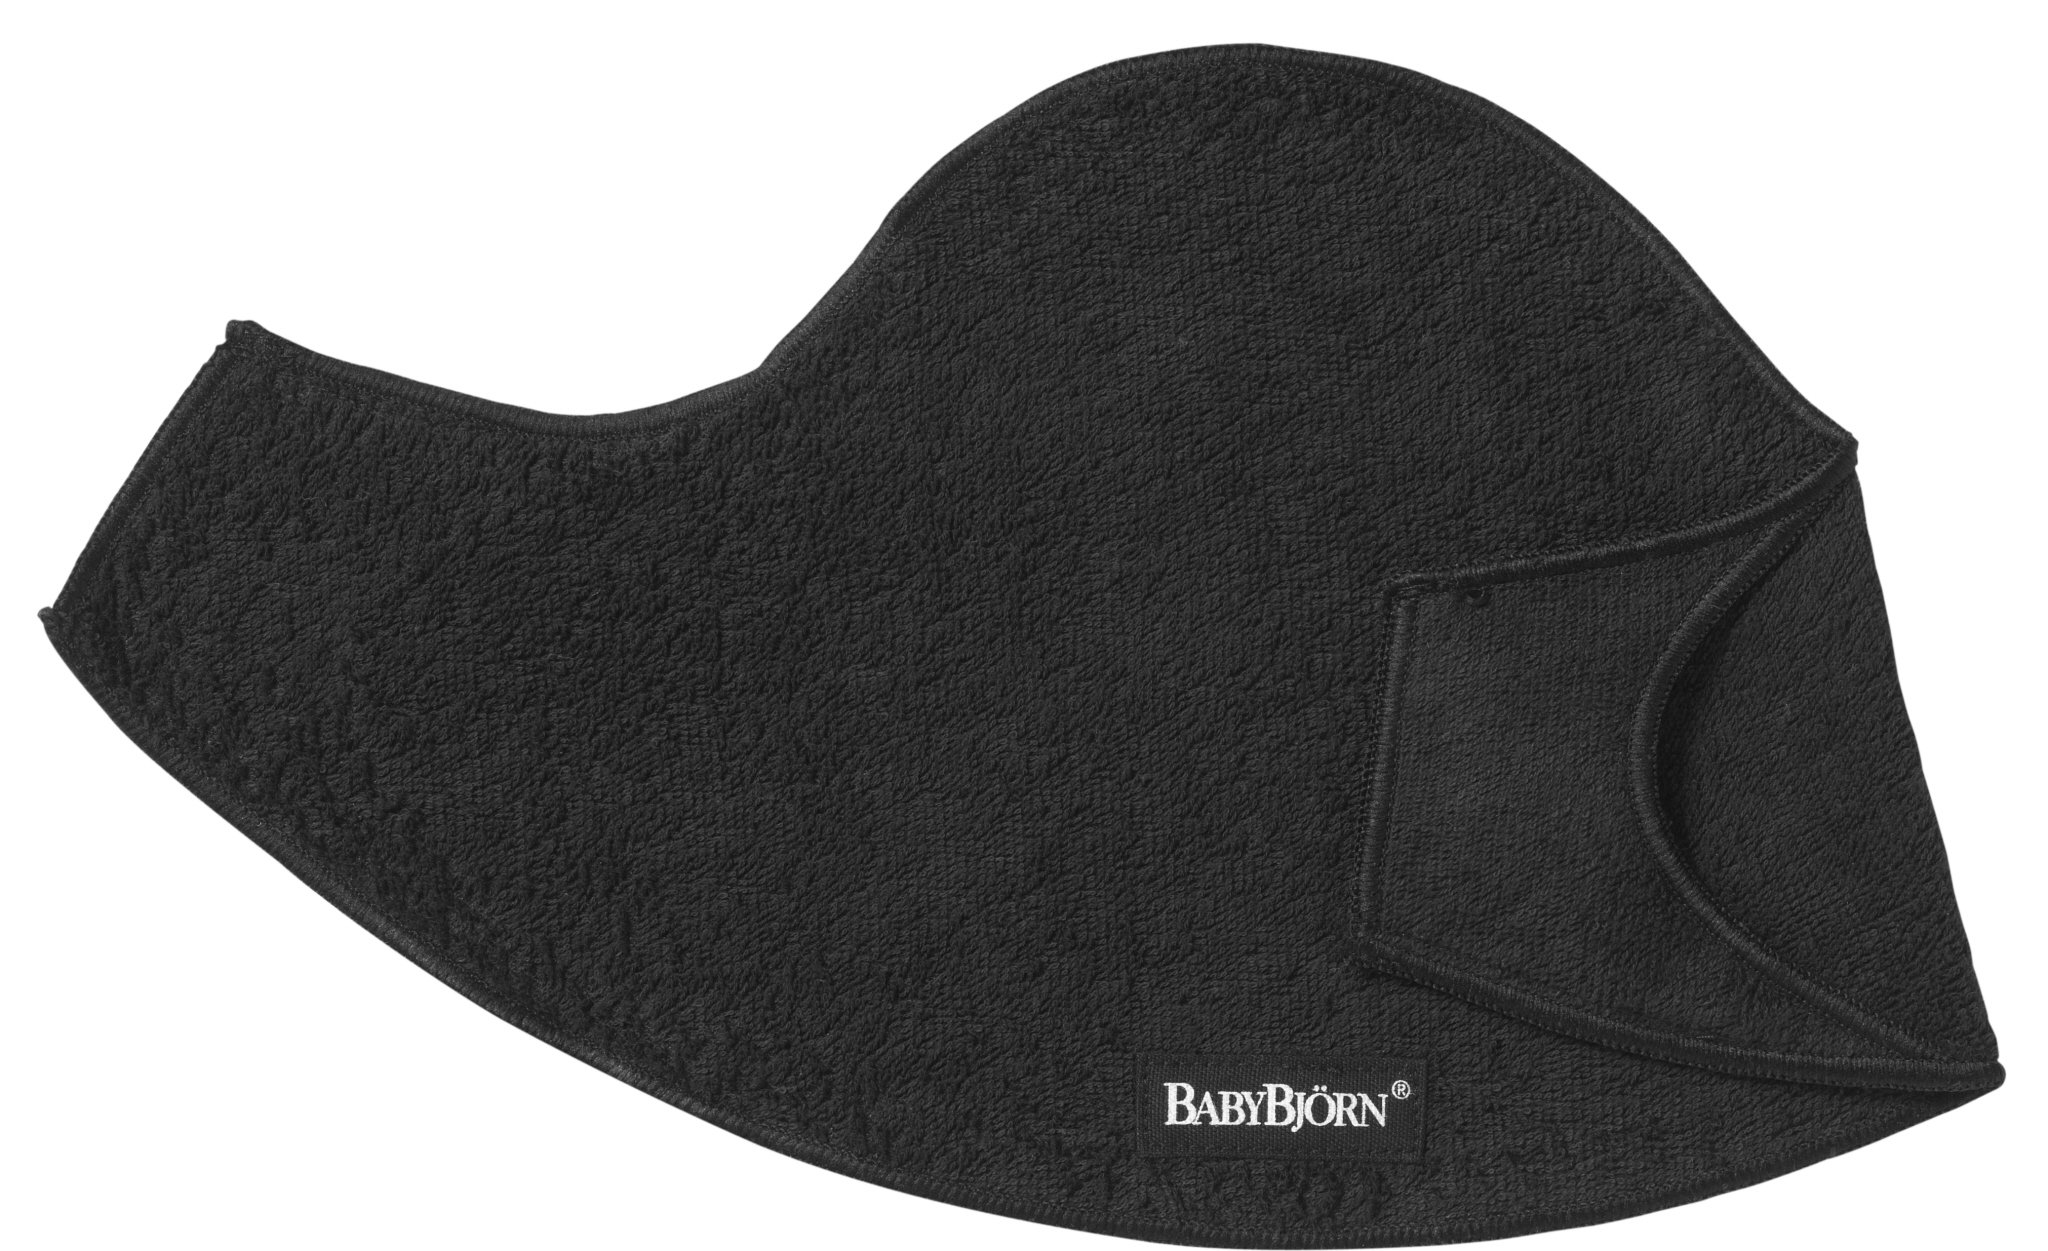 BABYBJORN Bib for Baby Carrier 2 Pack - Black